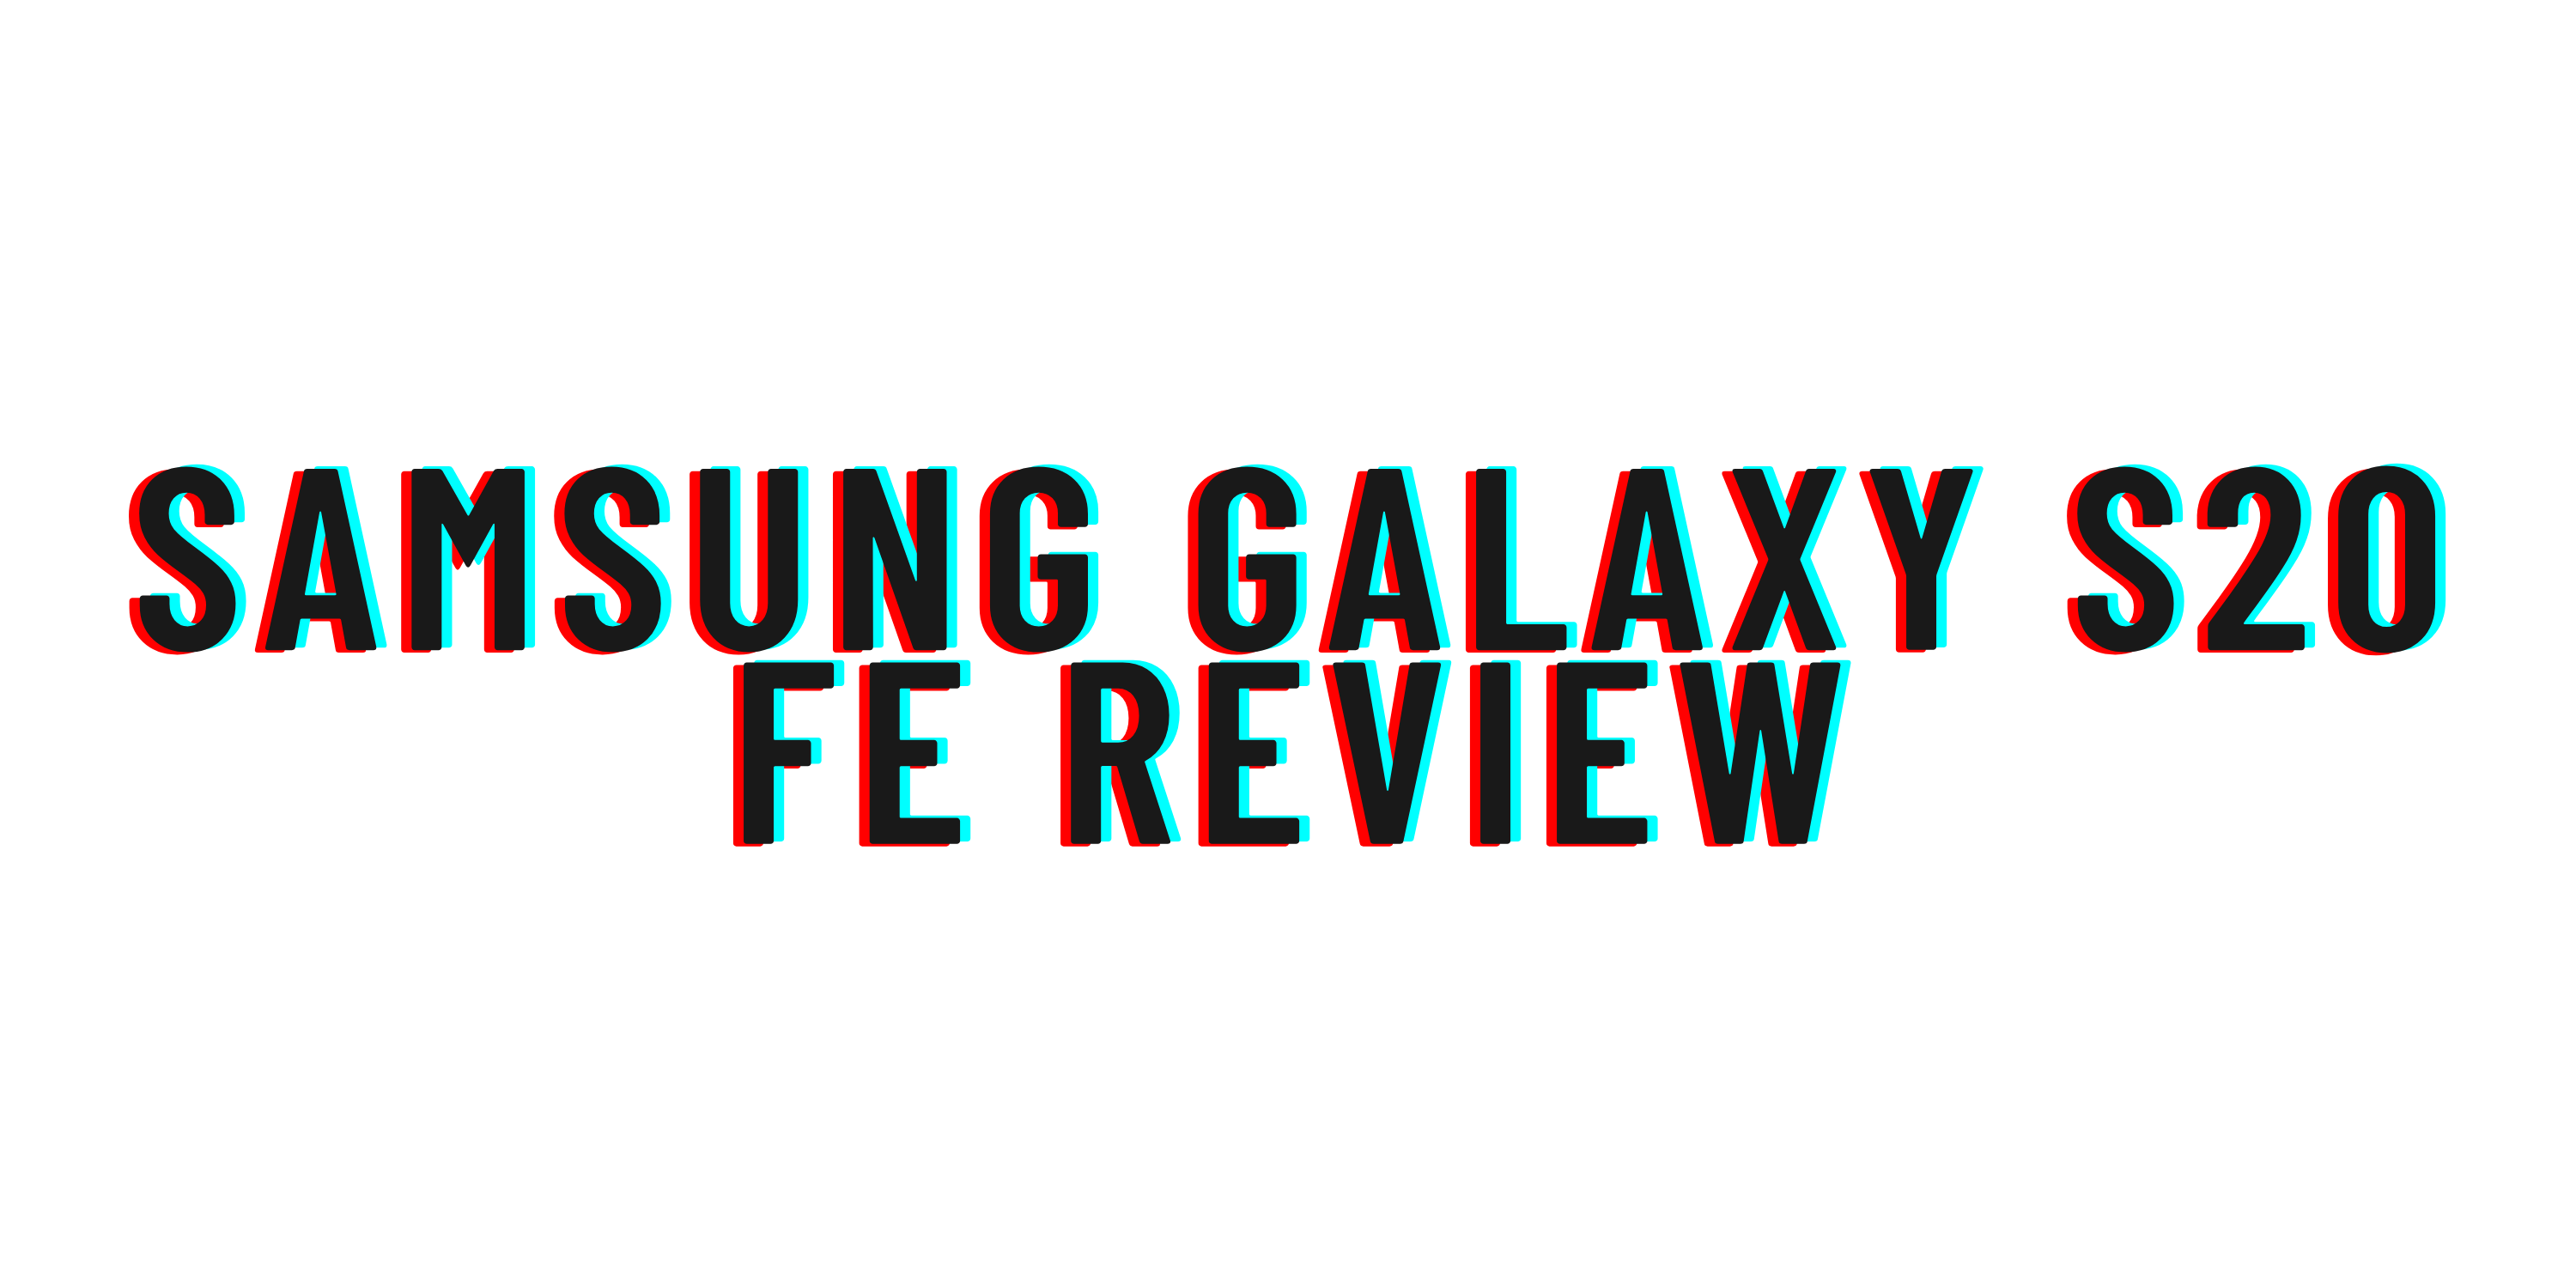 Samsung Galaxy S20 FE review